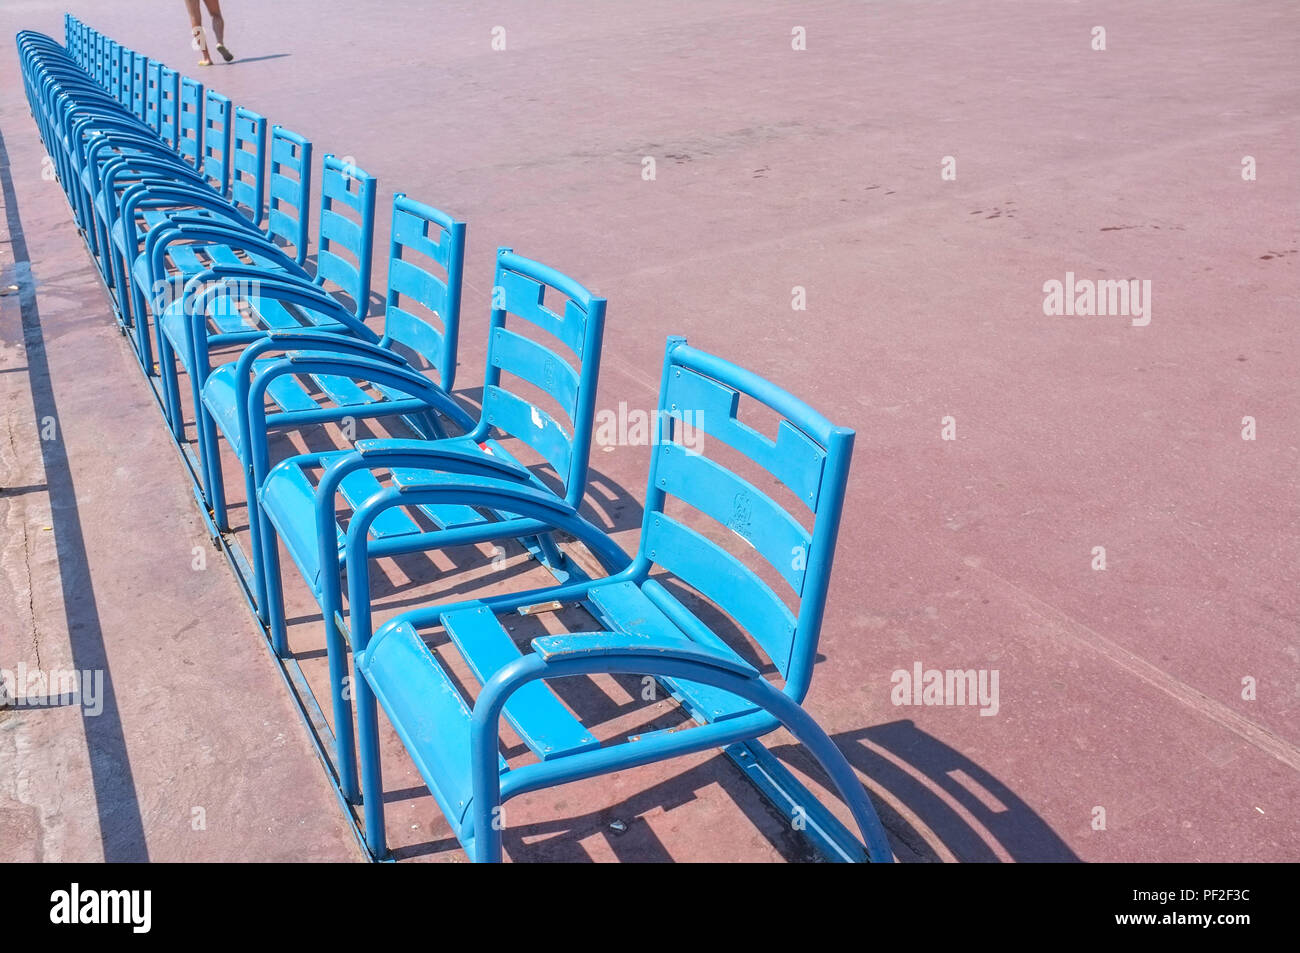 a-man-walk-by-the-blue-chairs-on-the-pro